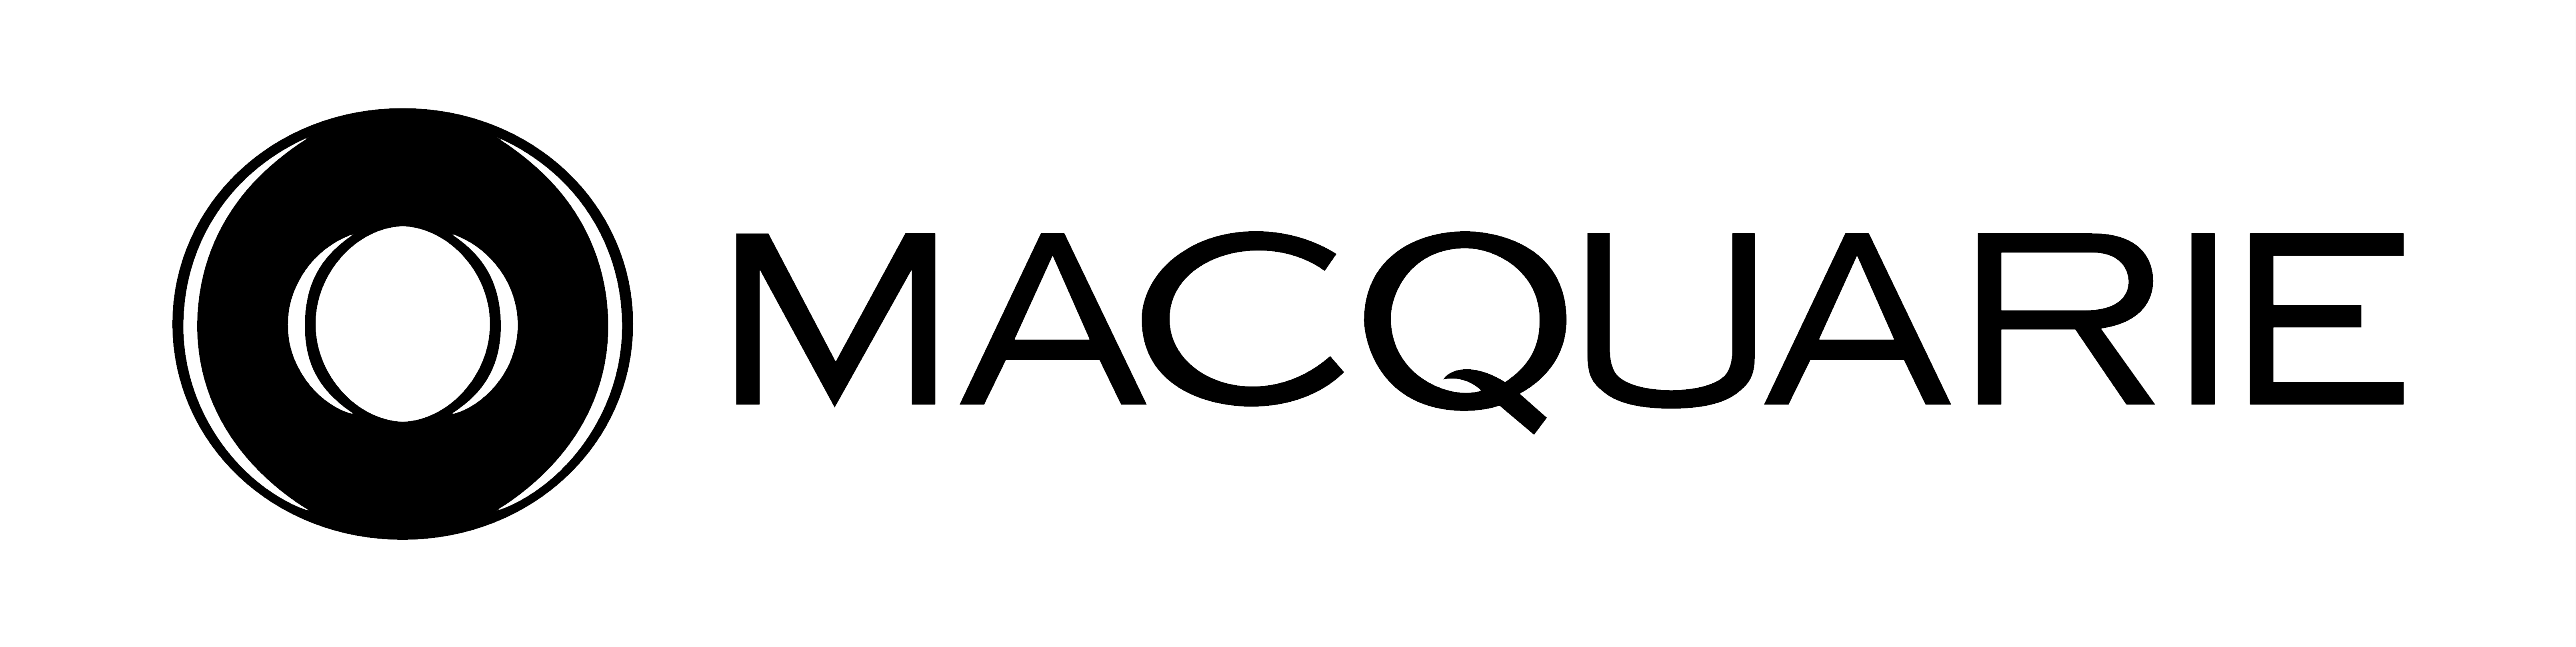 macquarie-logo-png-macquarie-group-macquarie-logo-6440